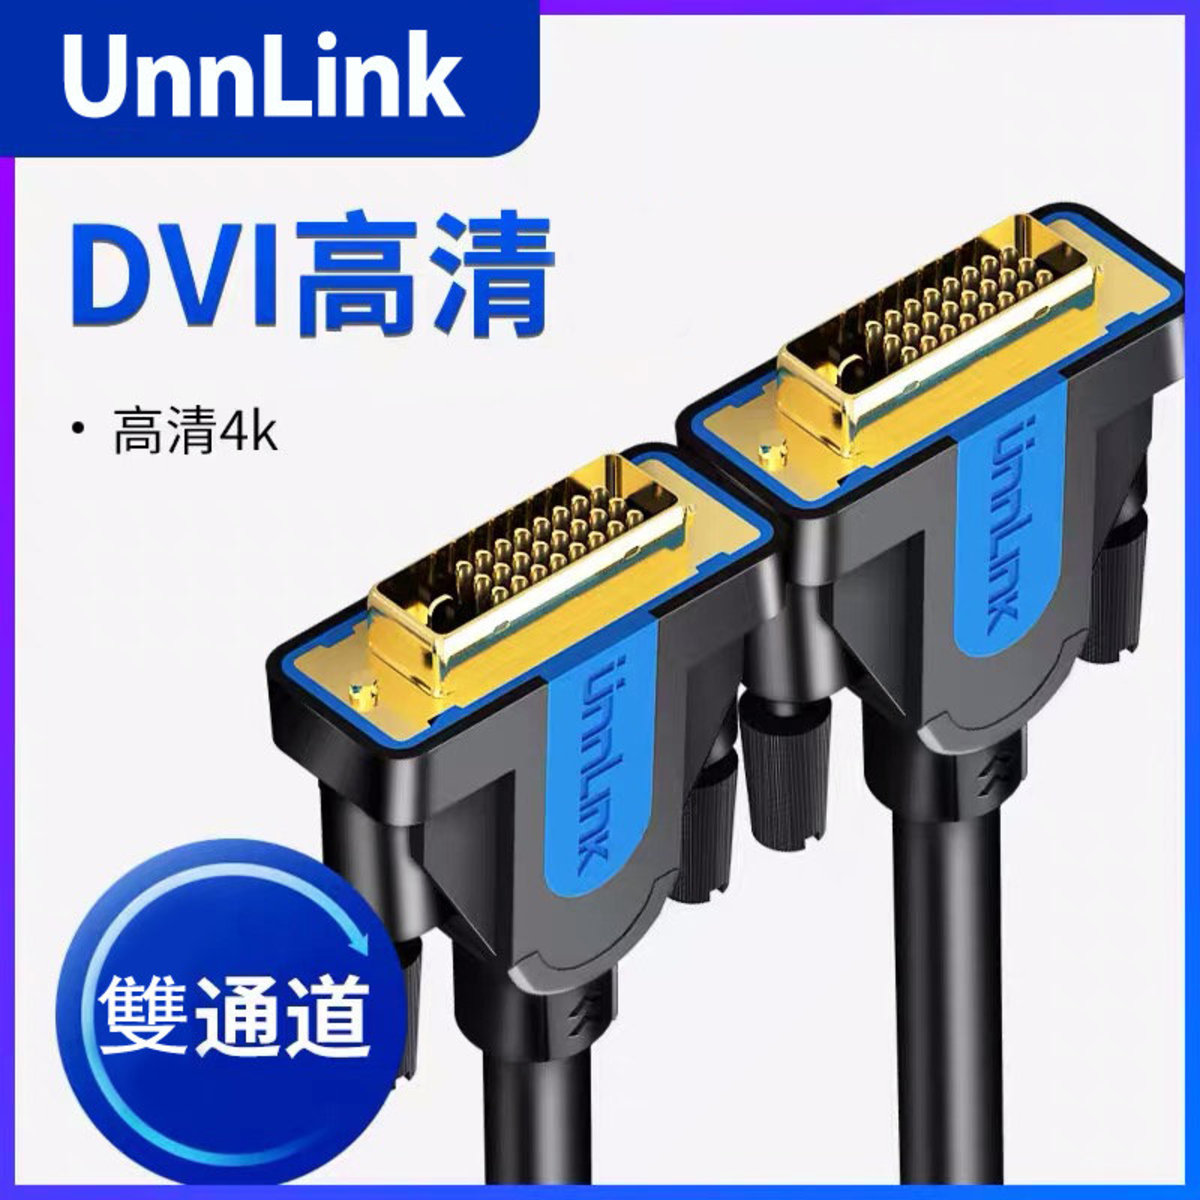 UnnLink Typce DVI to DVI Cable轉接器